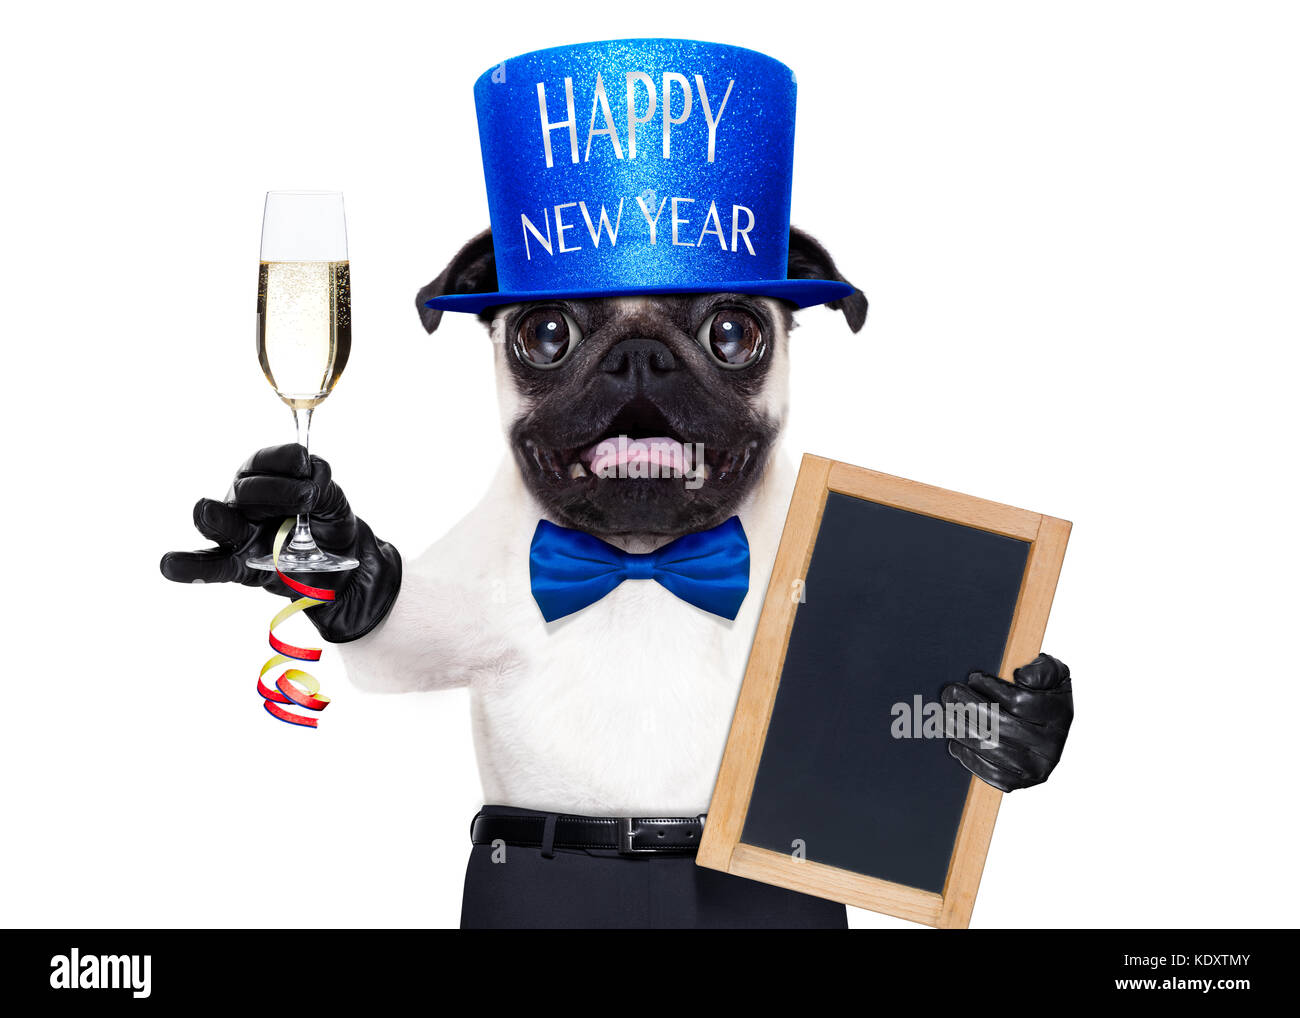 pug dog toasting for new years eve with champagne glass behind blank white banner blackboard or placard isolated on white background